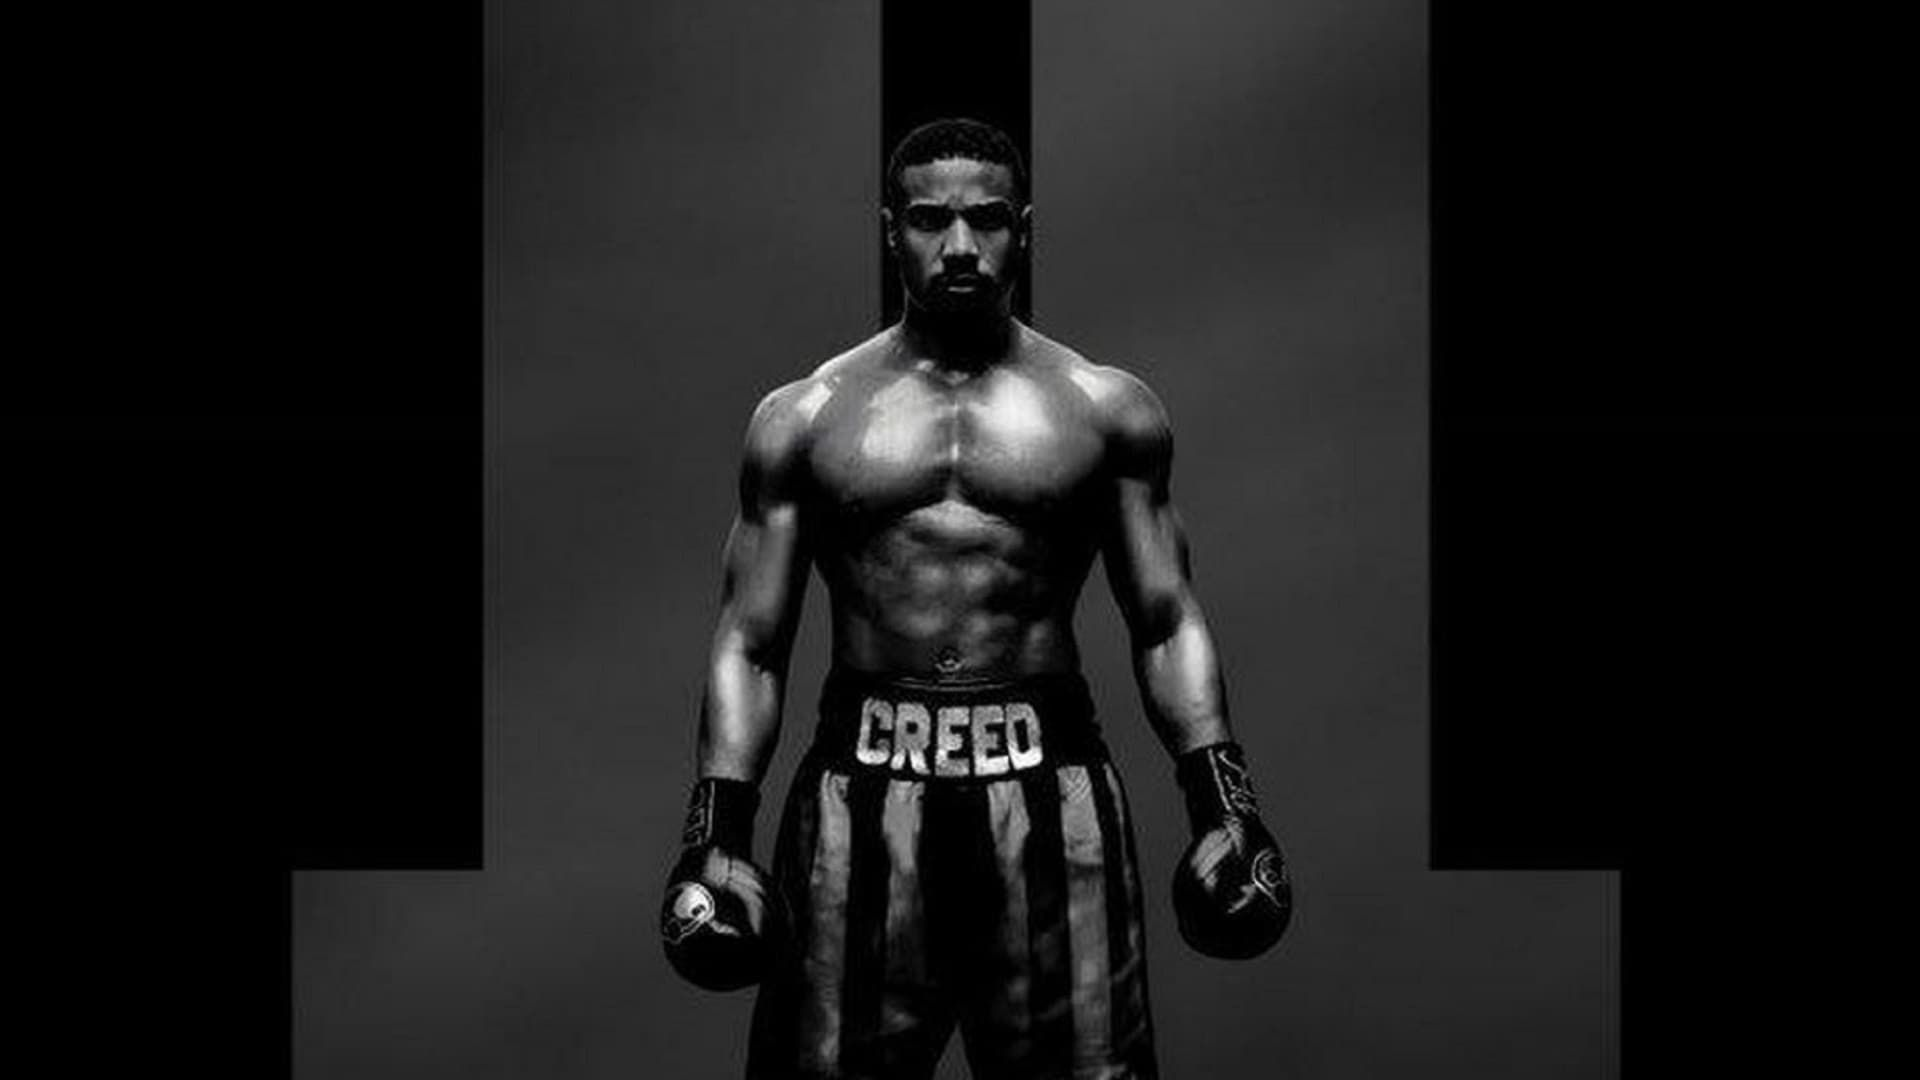 Watch Creed Ii 2018 Full Movie Online Free Follows Adonis Creed S Life Inside And Outside Filme Creed Filmes Online Gratis Assistir Filmes Completos Online